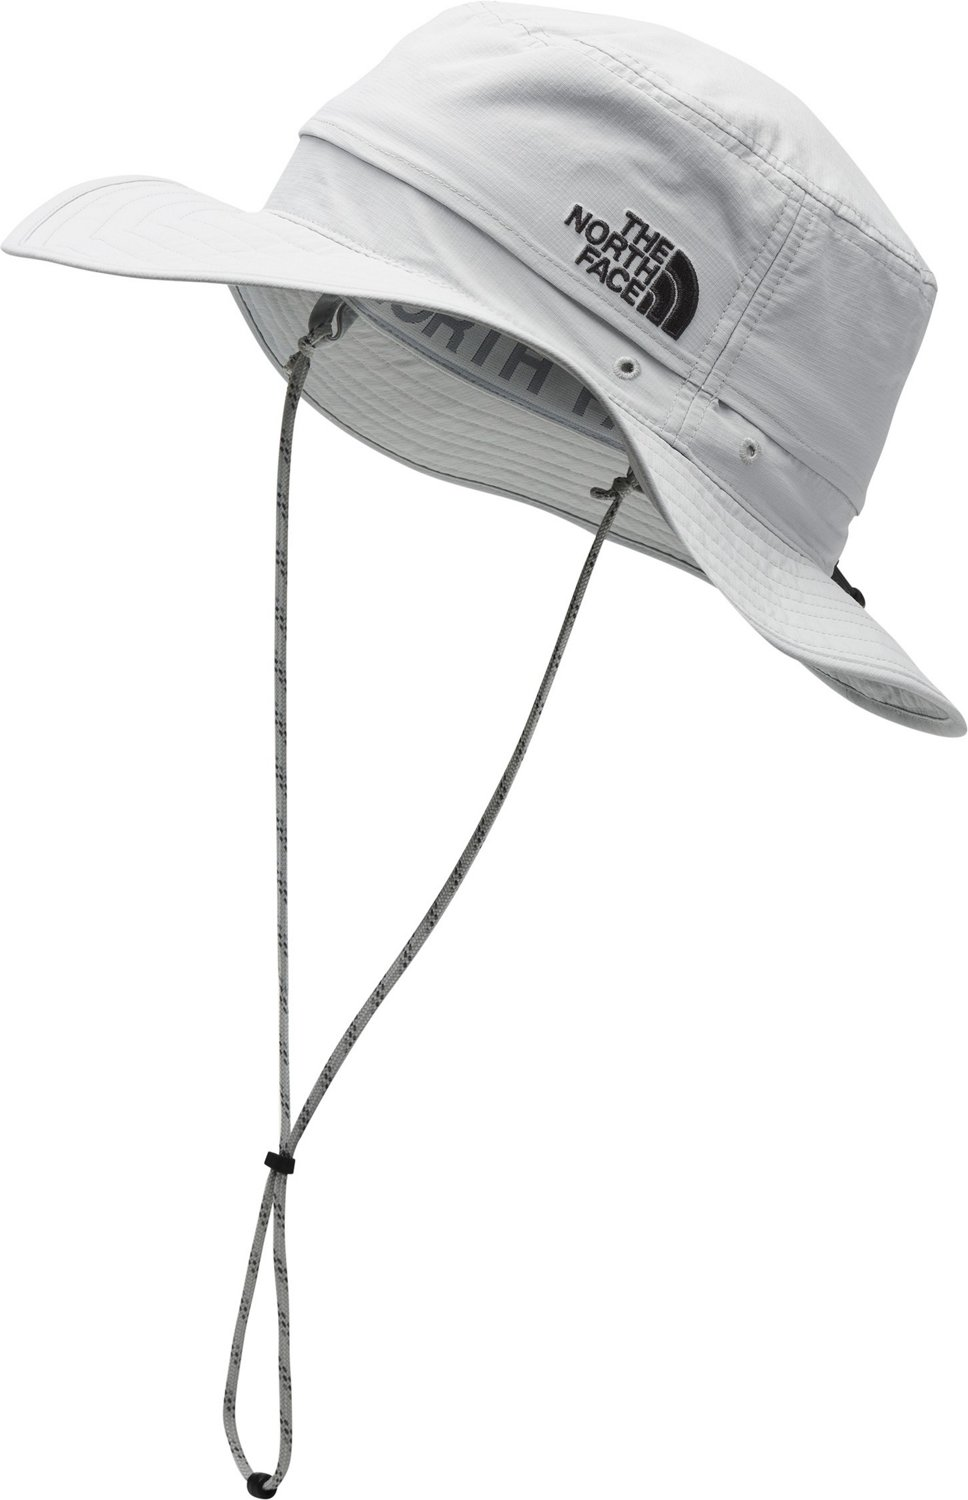 667fb891 Display product reviews for The North Face Men's Horizon Breeze Brimmer Hat